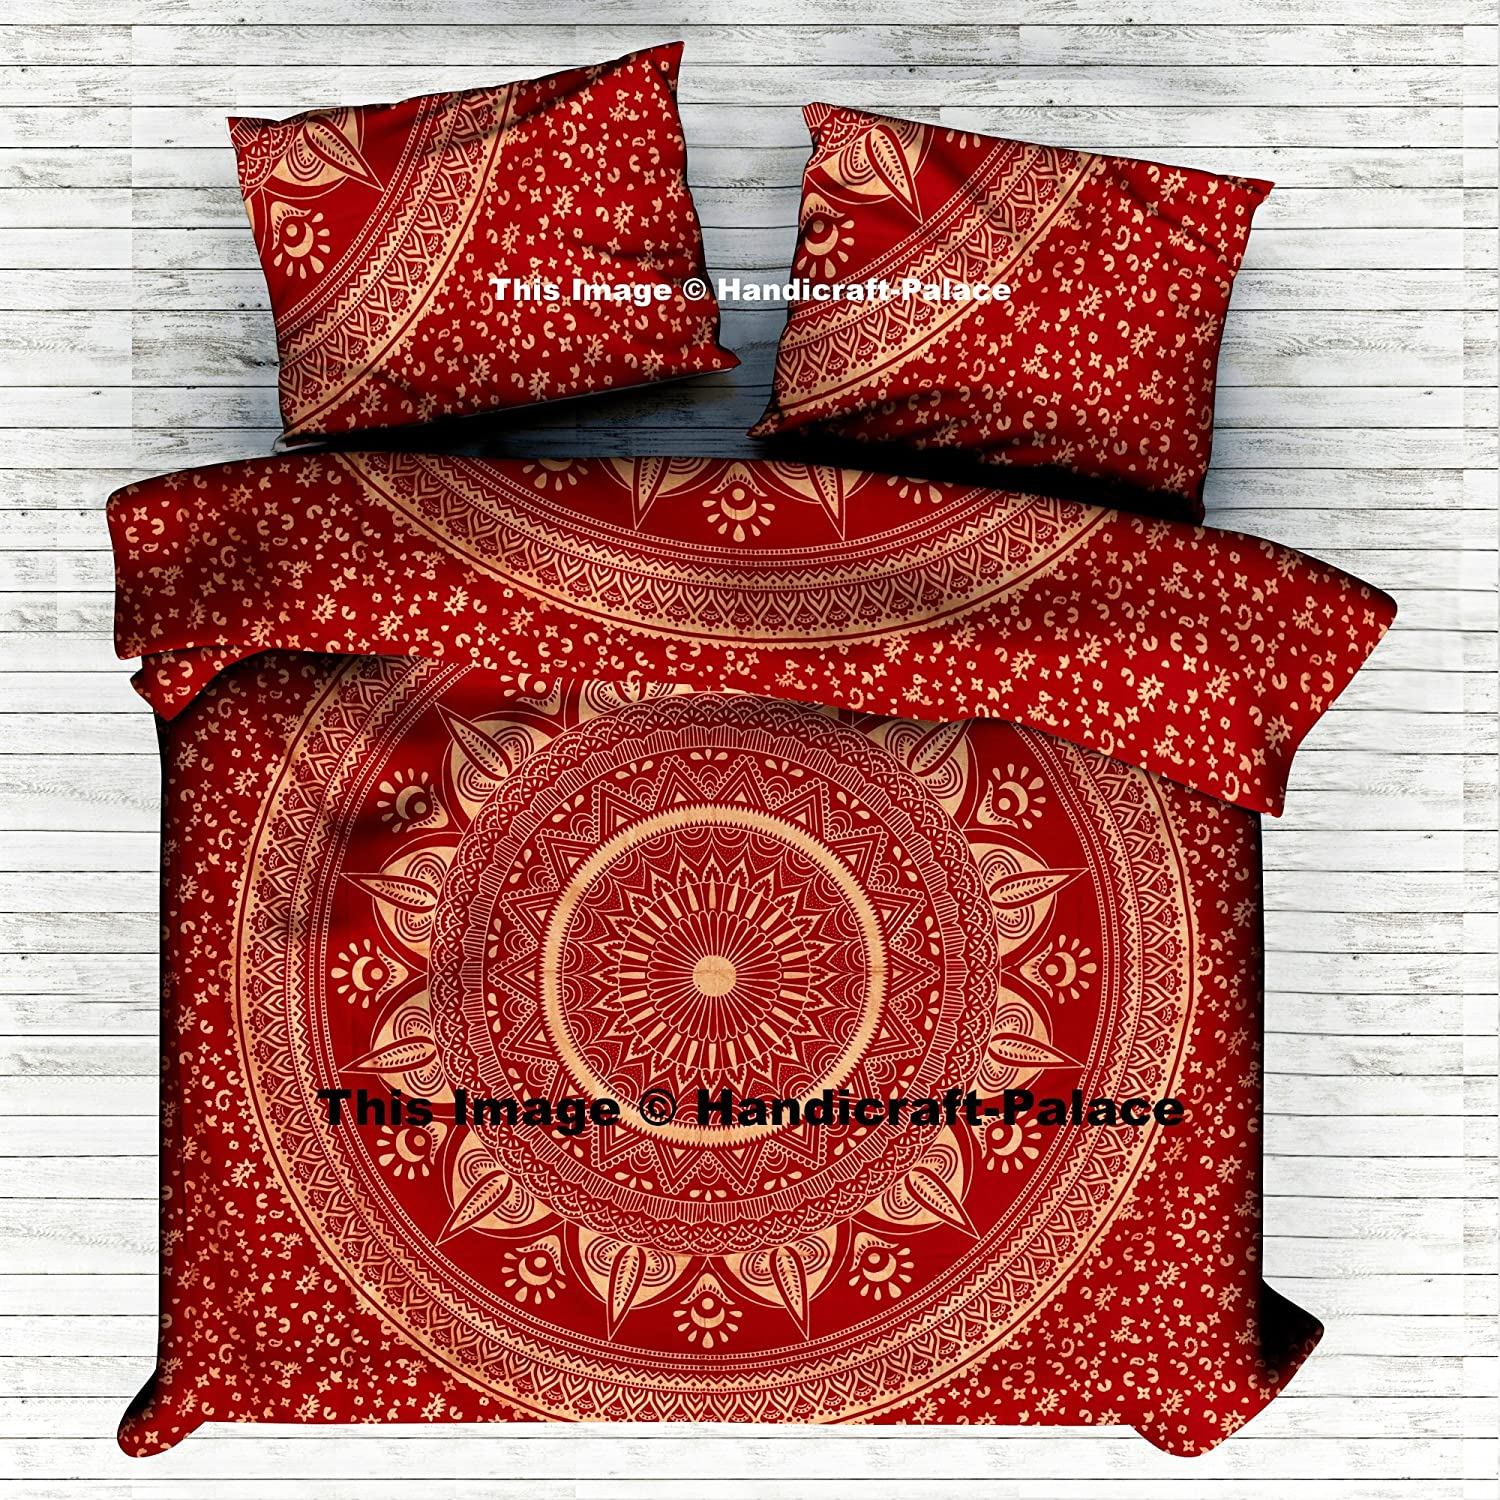 Indian Ombre Mandala Gold Duvet Cover, Queen Size Blanket, Quilt Cover, Indian Bedspread, Bohemian Bedding, Double Bedspread Comforter Cotton Duvet Cover Sold by Handicraftspalace 198